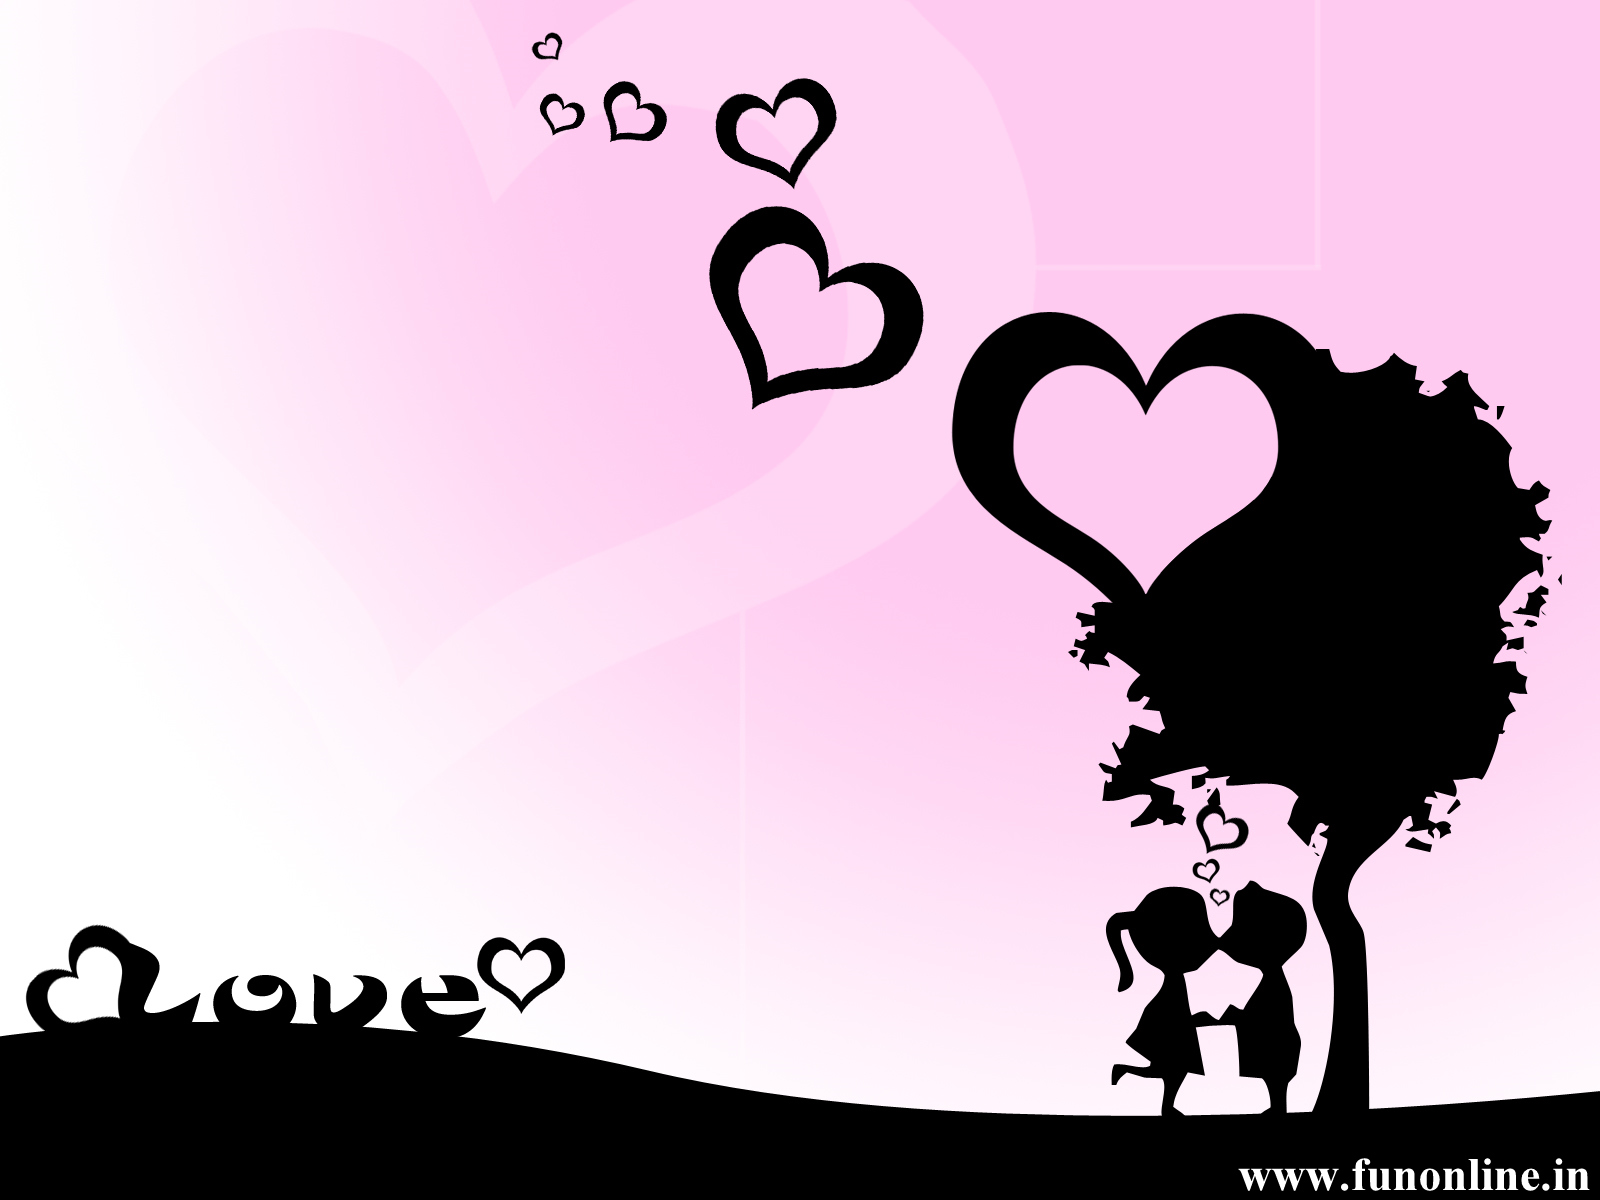 Romantic and Cute Love Wallpaper 1600x1200